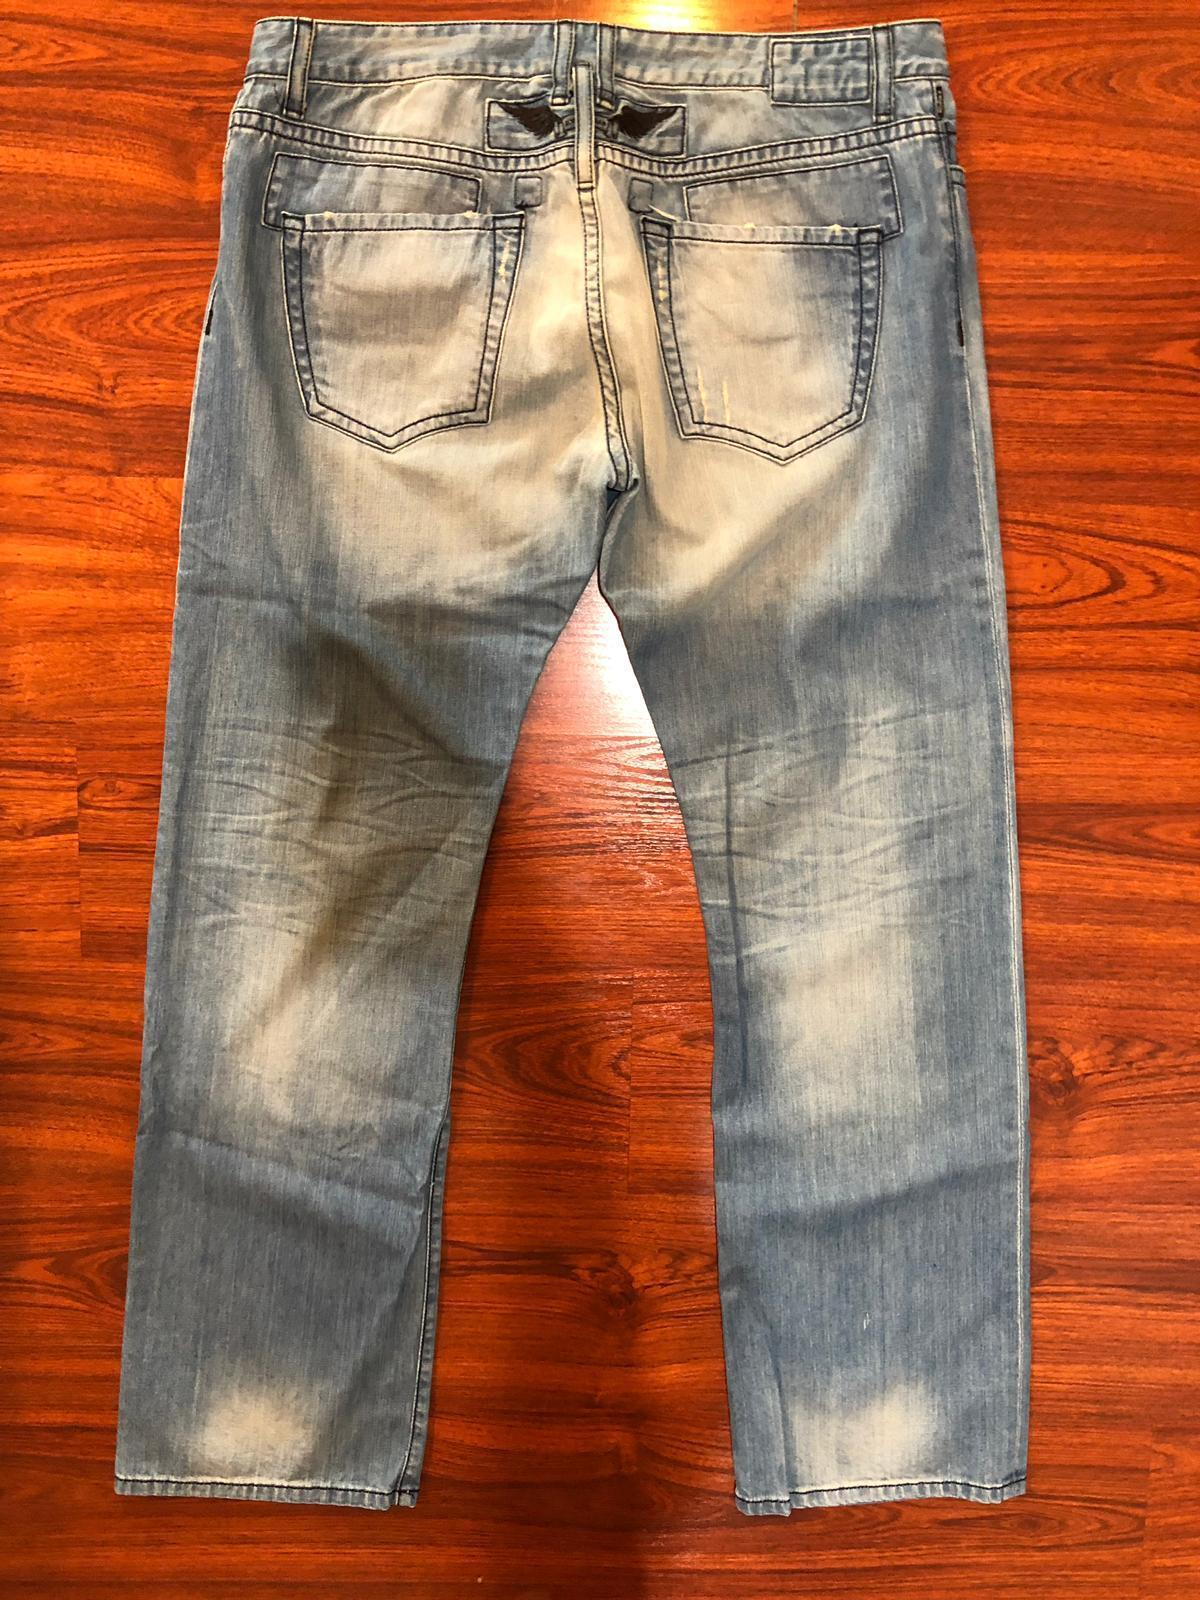 NEW Authentic Robin's Jeans Mens 42 5696 Stonewash Distressed Classic Robin